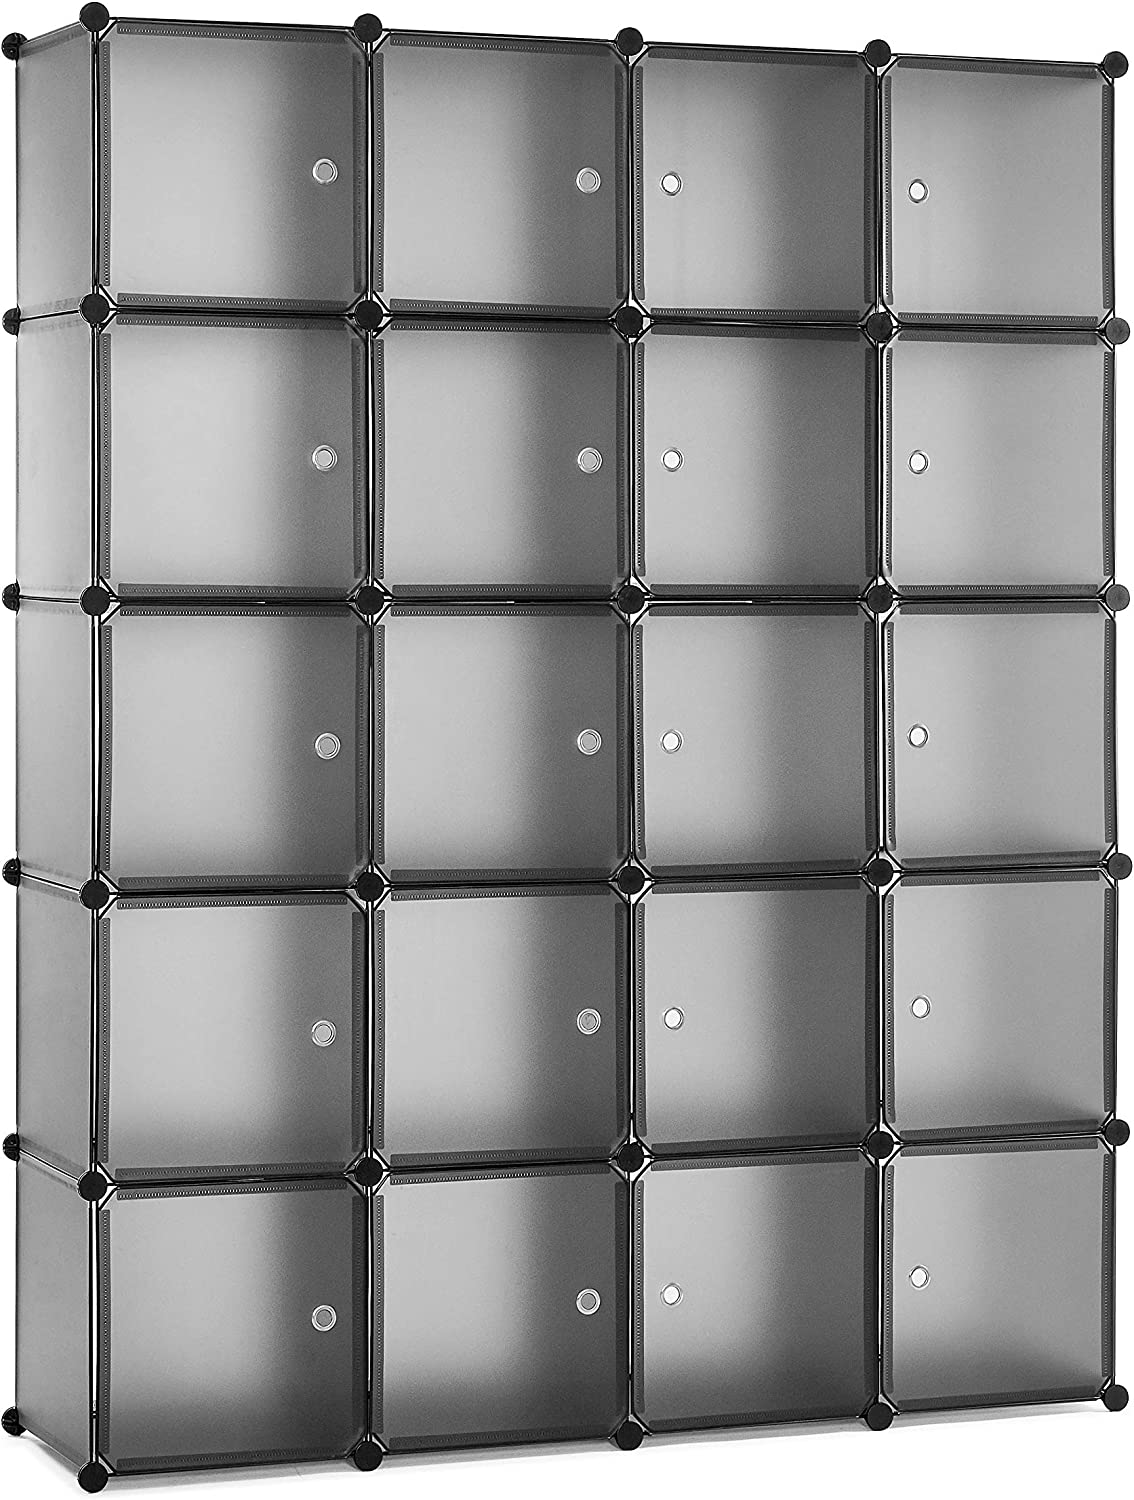 Meerveil Portable Interlocking Plastic Wardrobe Cabinet, Transparent Cube Storage Organizer for Hanging Clothes, Modular Cabinet for Clothes, Shoes, Toys and Books (20 cubes)